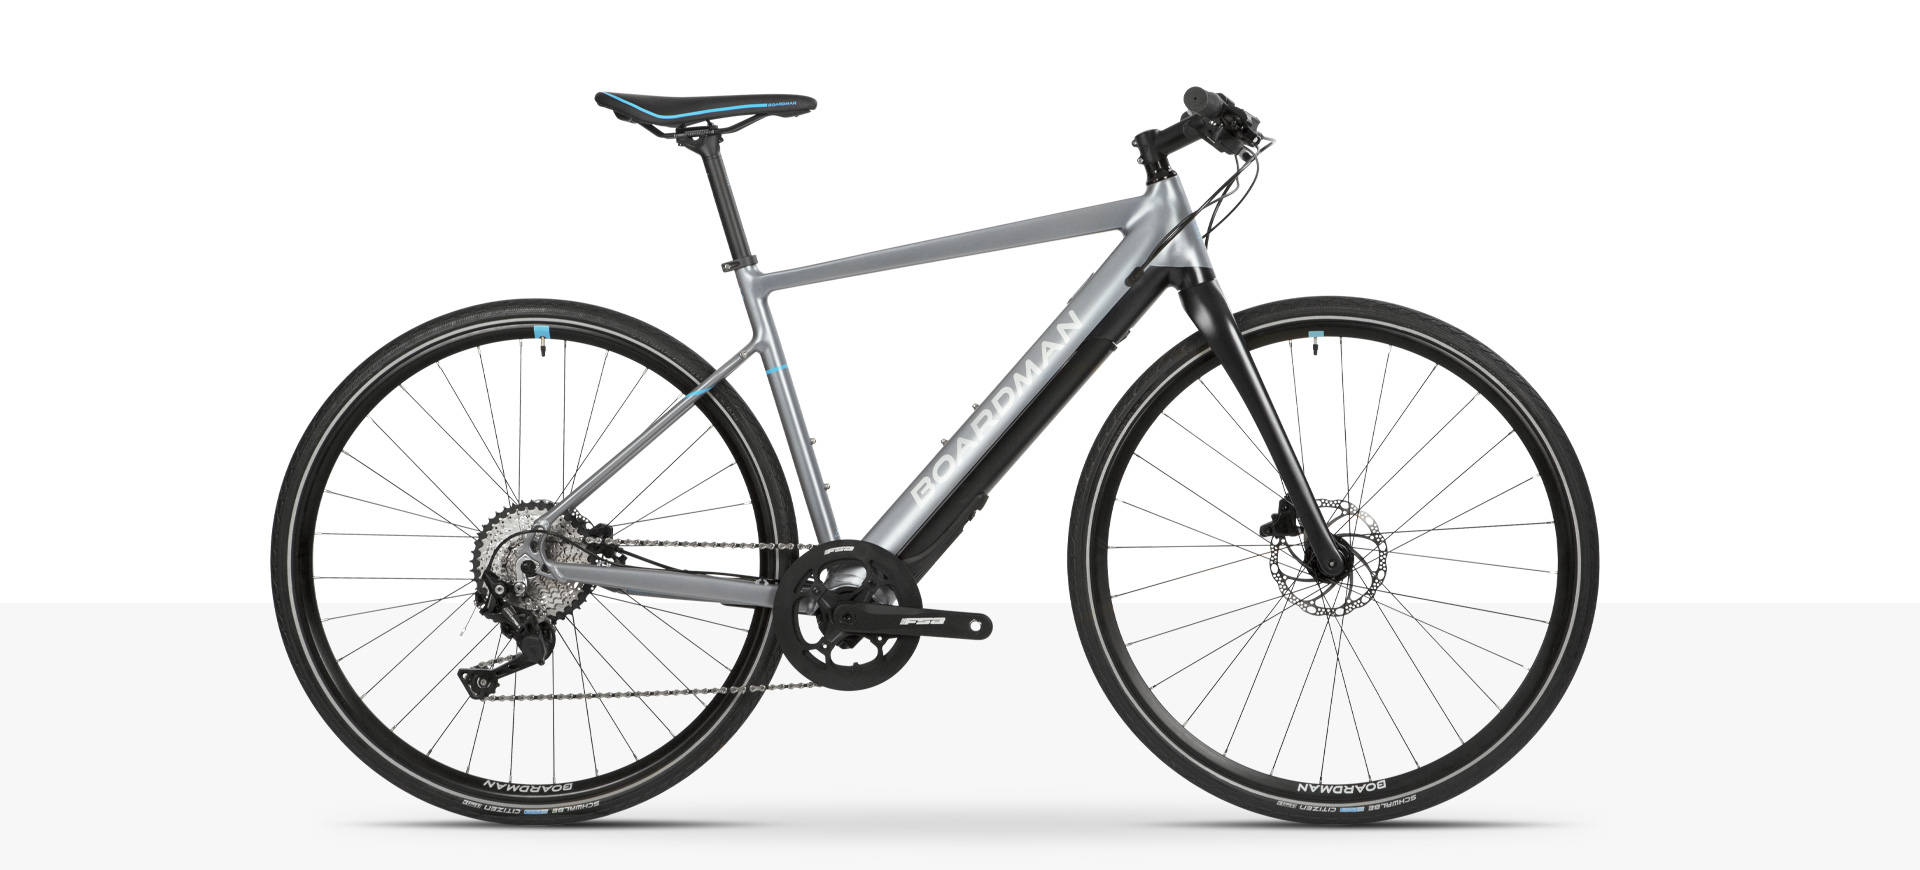 Boardman HYB 8.9 Electric Assist flat bar hybrid bike